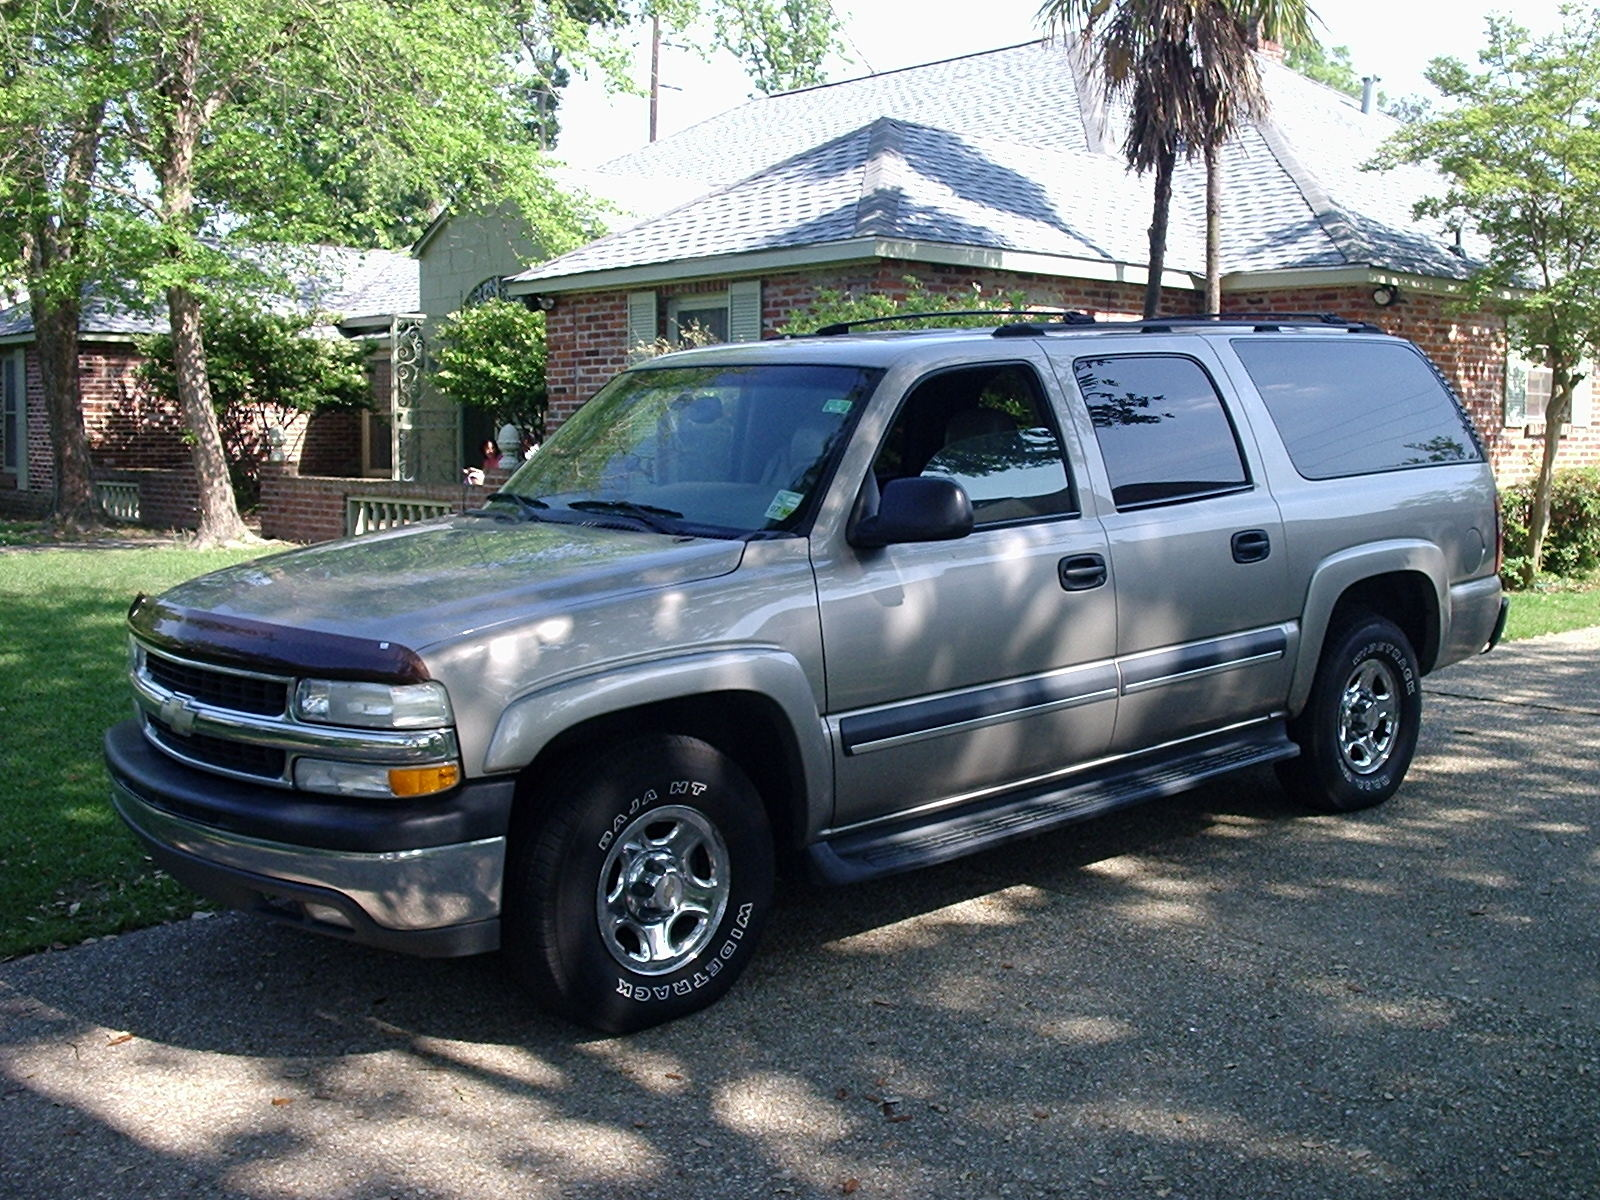 2003 chevrolet suburban overview cargurus. Black Bedroom Furniture Sets. Home Design Ideas